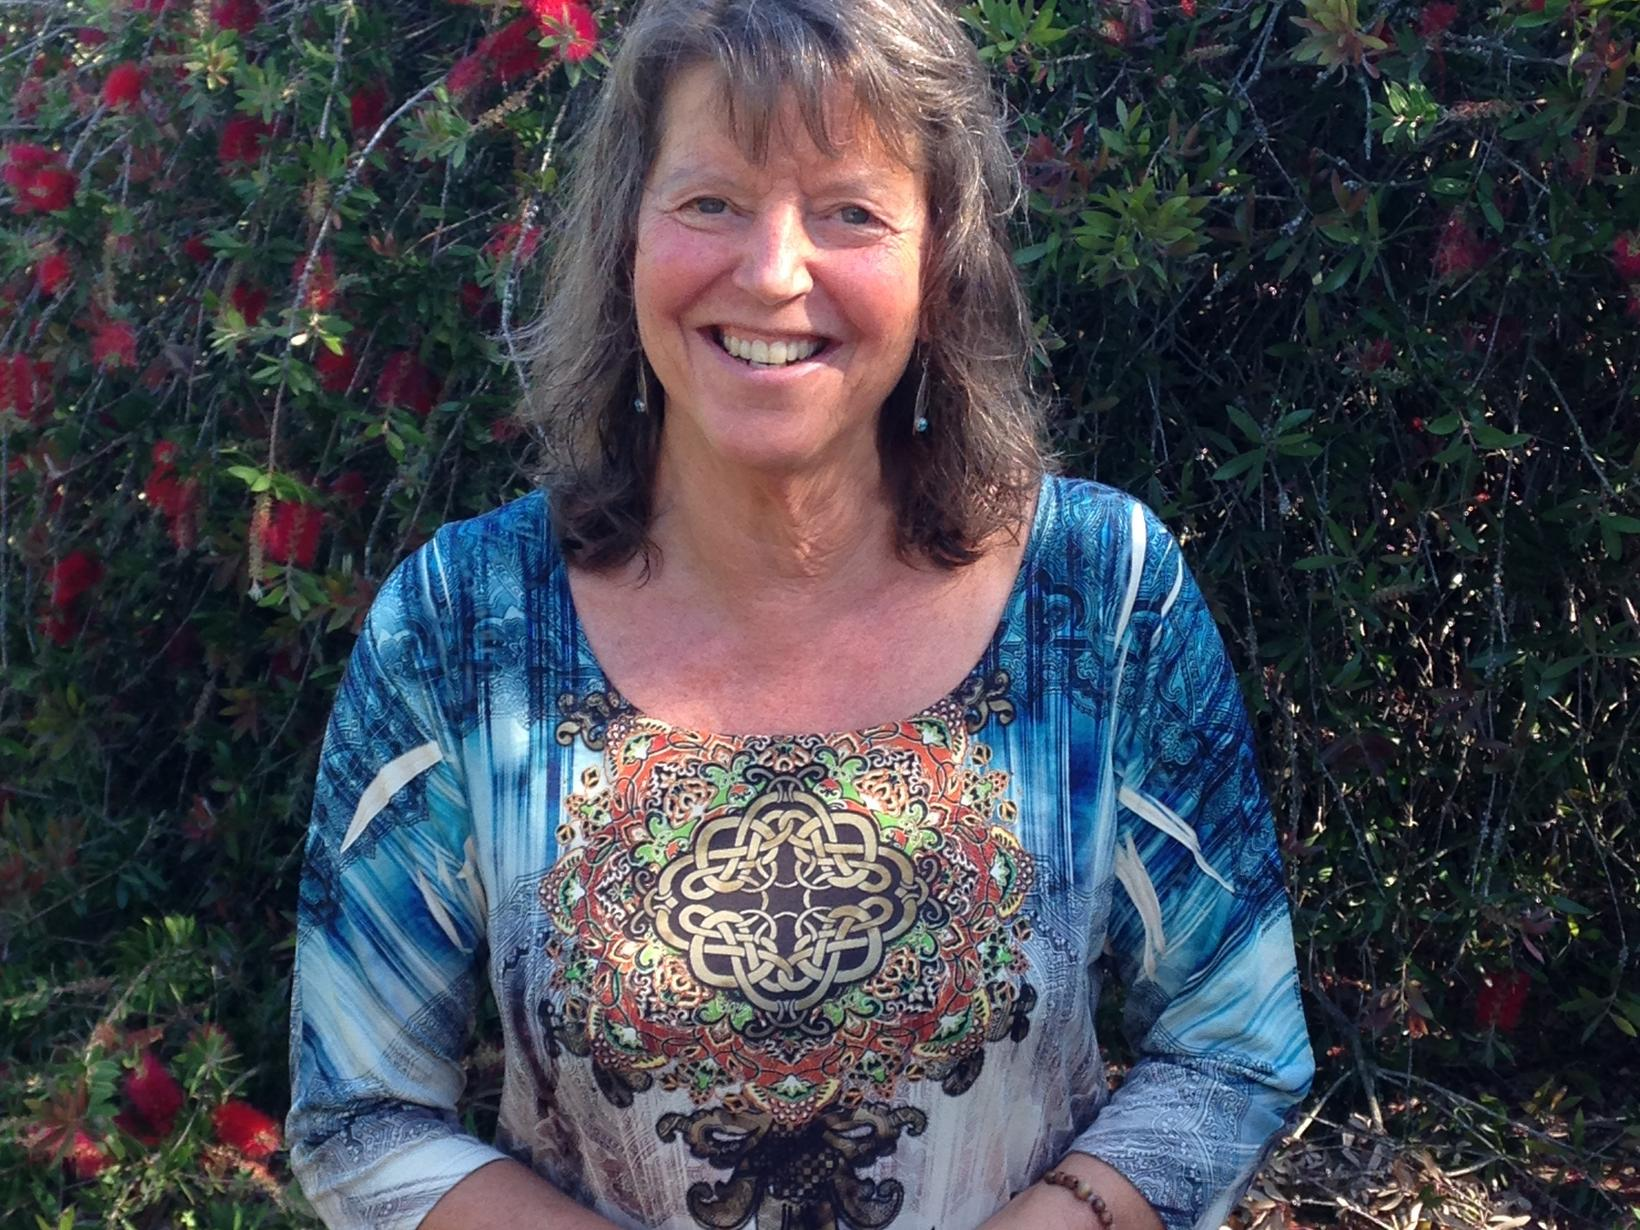 Lorrie from San Luis Obispo, California, United States